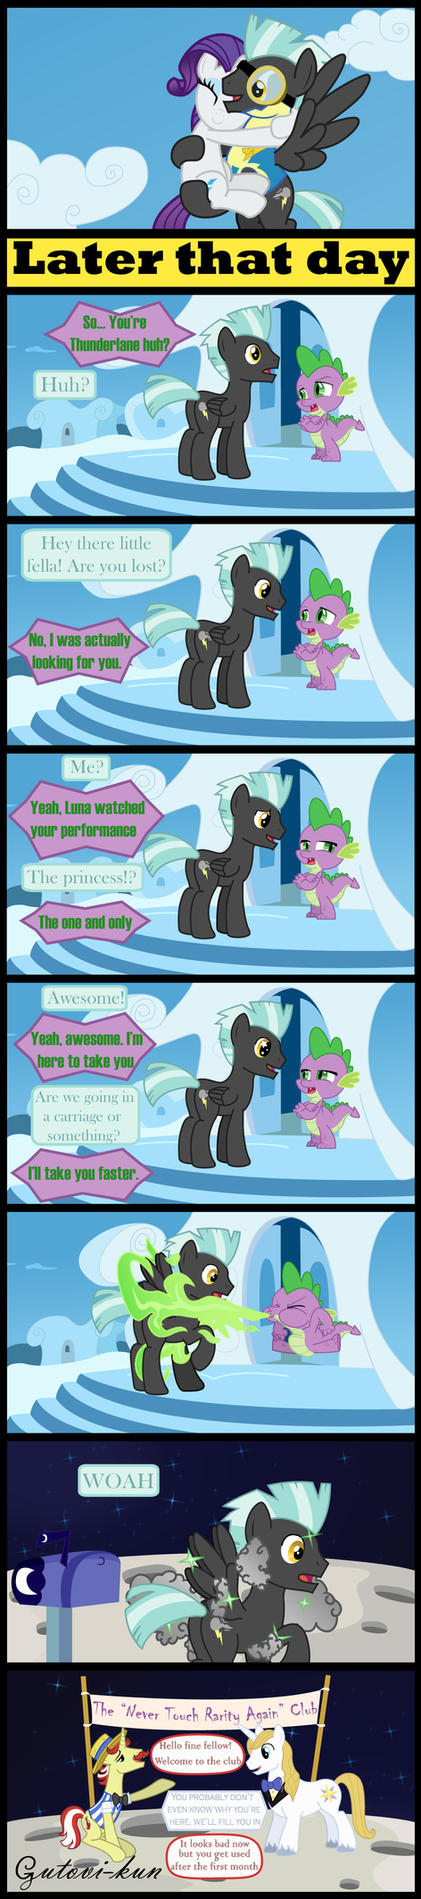 The Other Royal Mailbox by Gutovi-kun